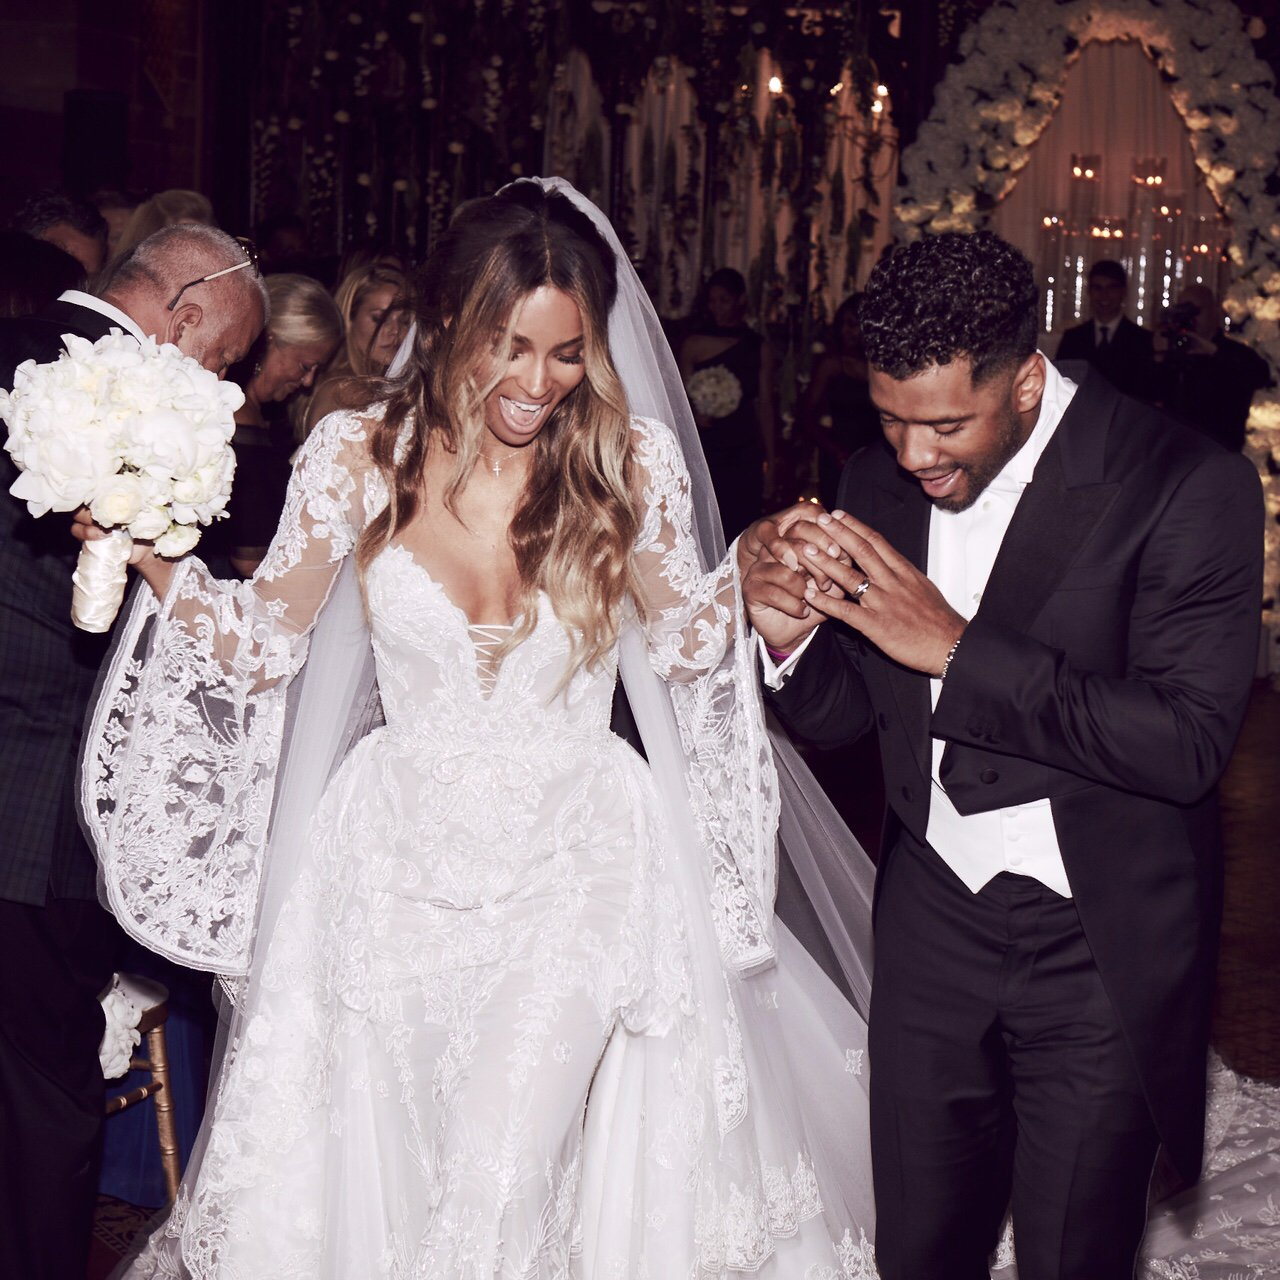 Ciara secretly married National Football League star Russell Wilson